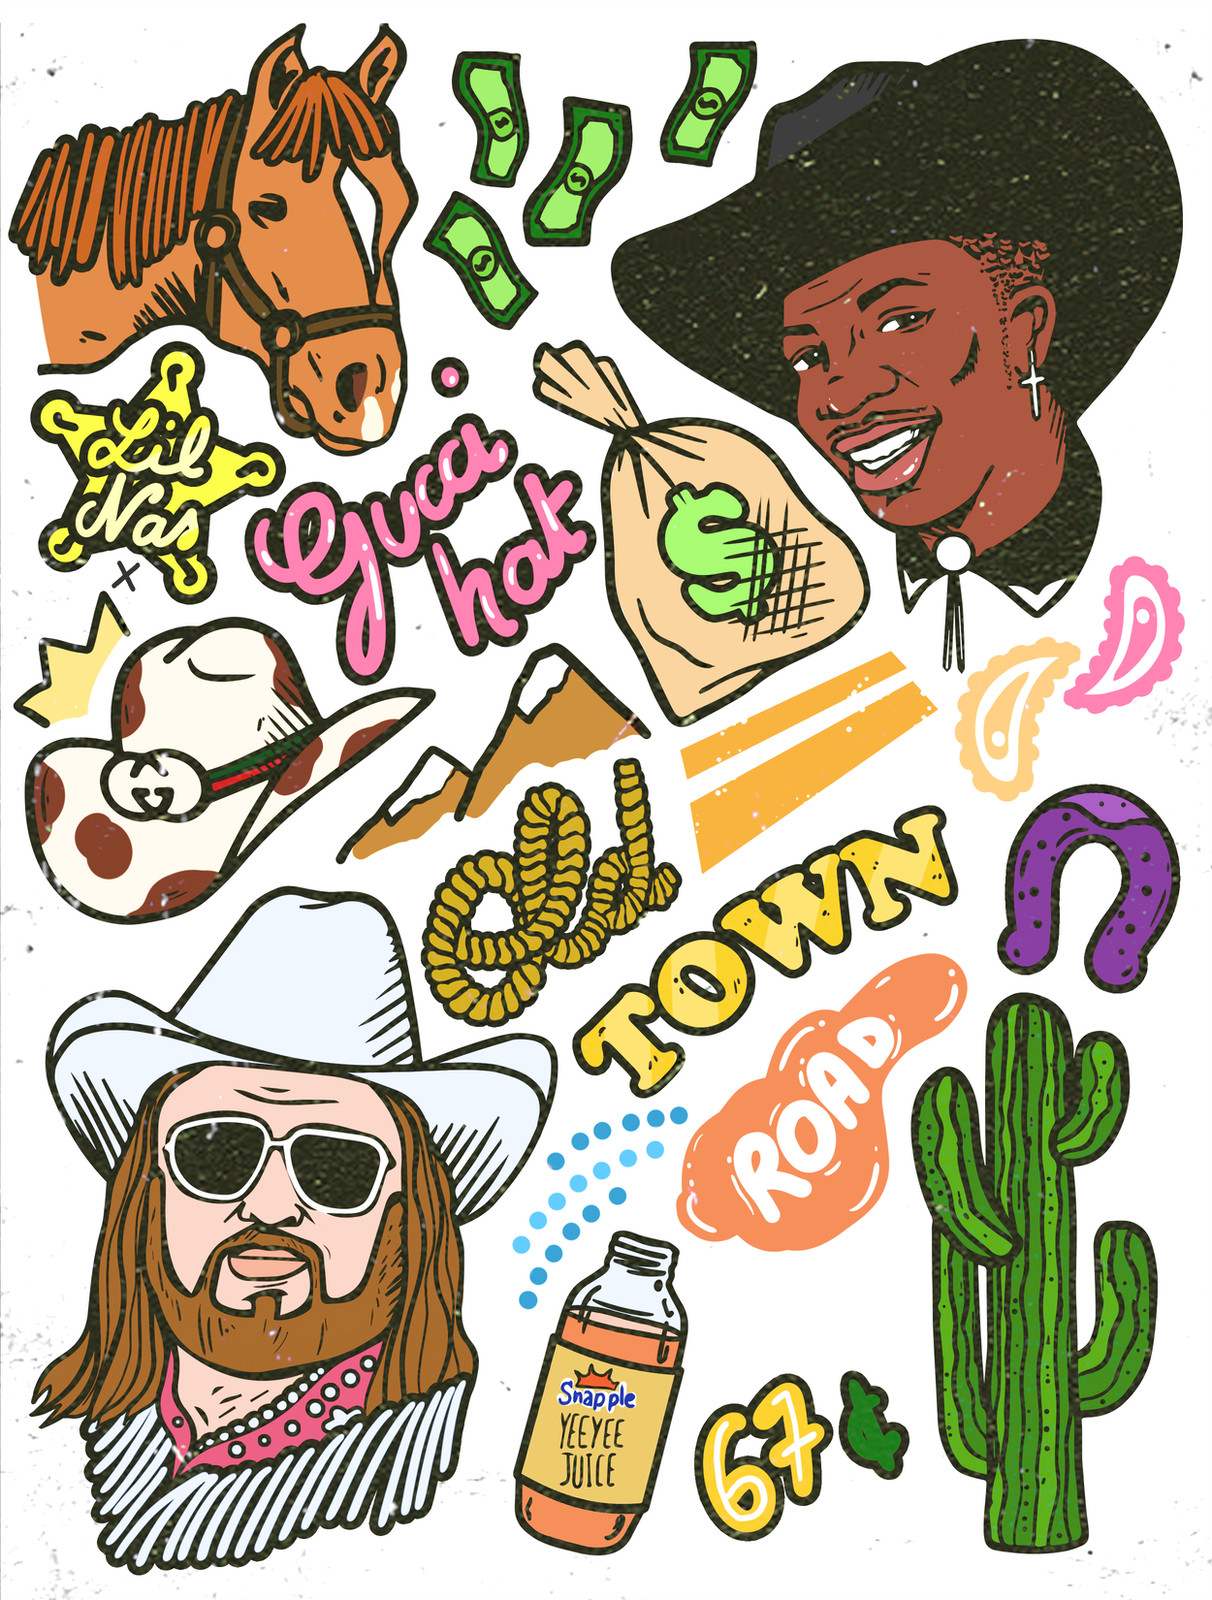 Billy ray cyrus clipart clip library stock Lil Nas X ft. Billy Ray Cyrus - Old Town Road fanart clip library stock